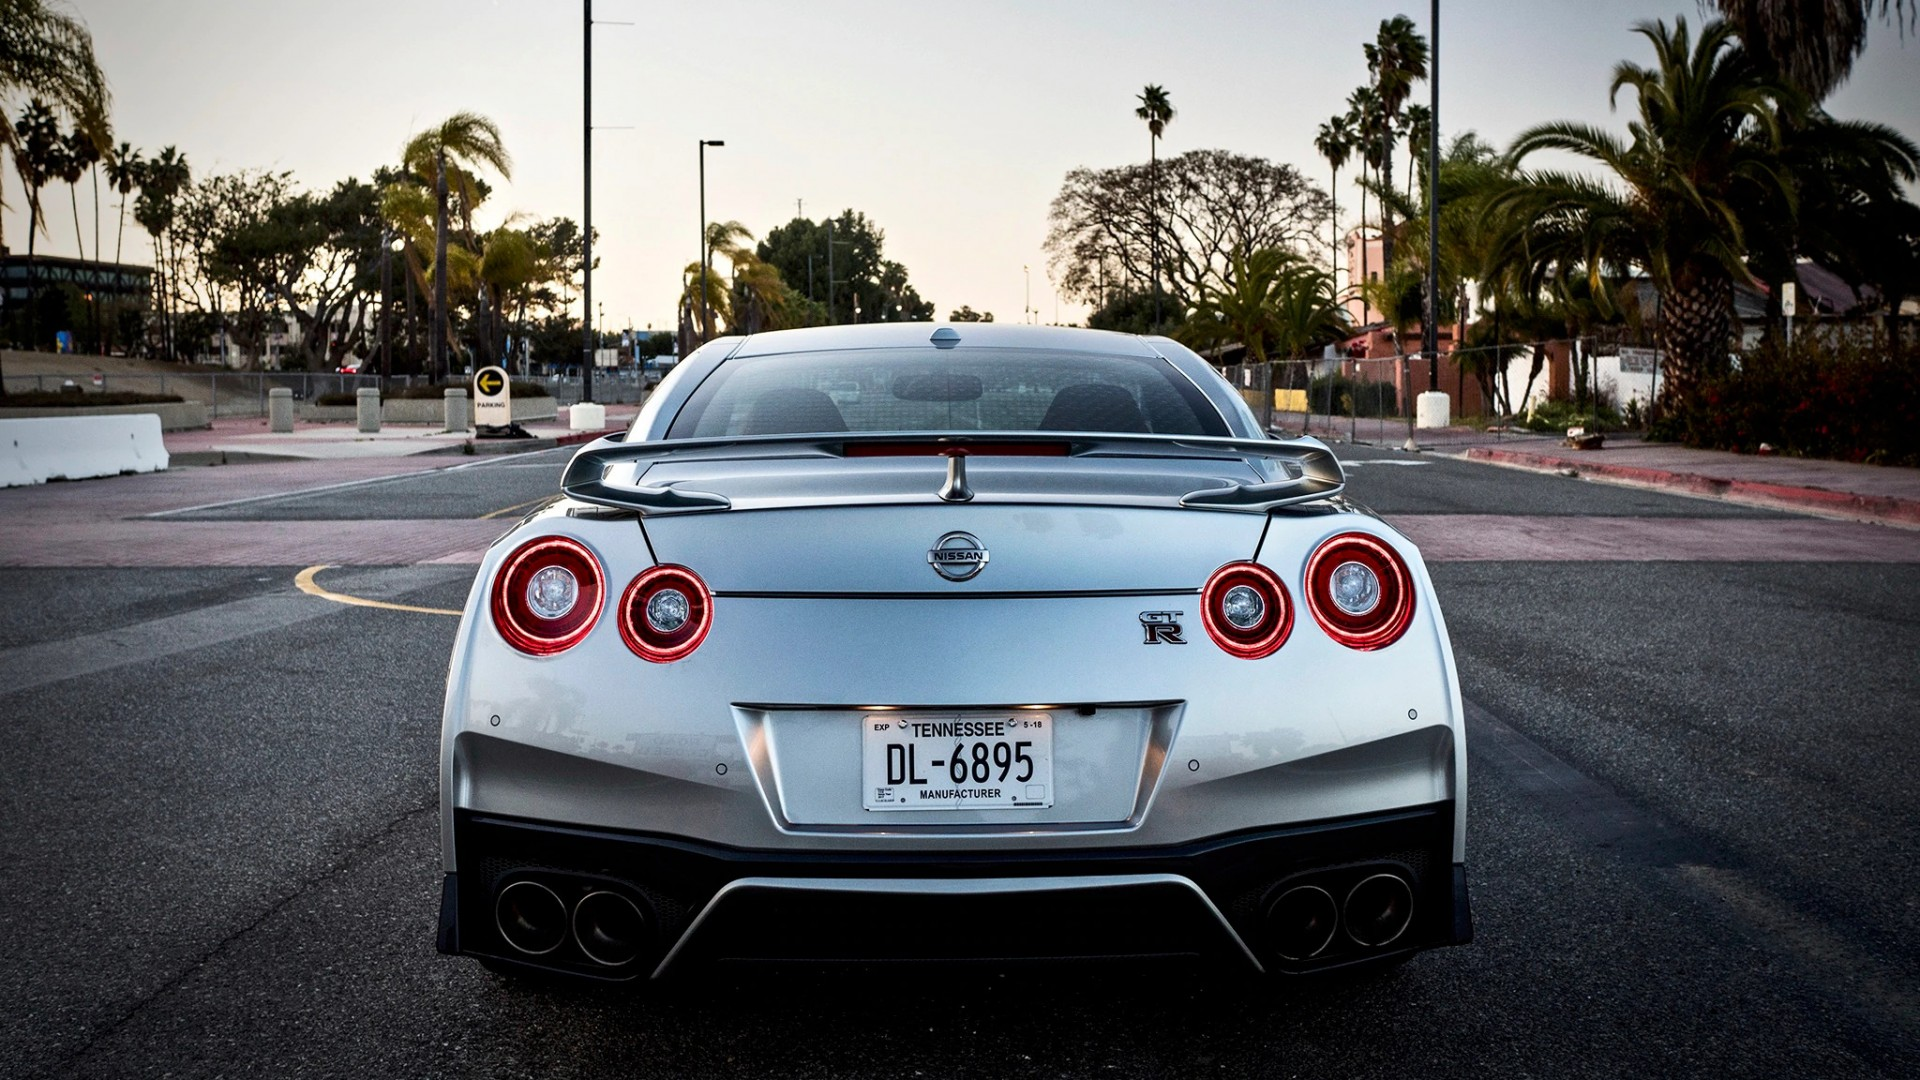 Nissan Gt R Premium X Cars Luxury Cars